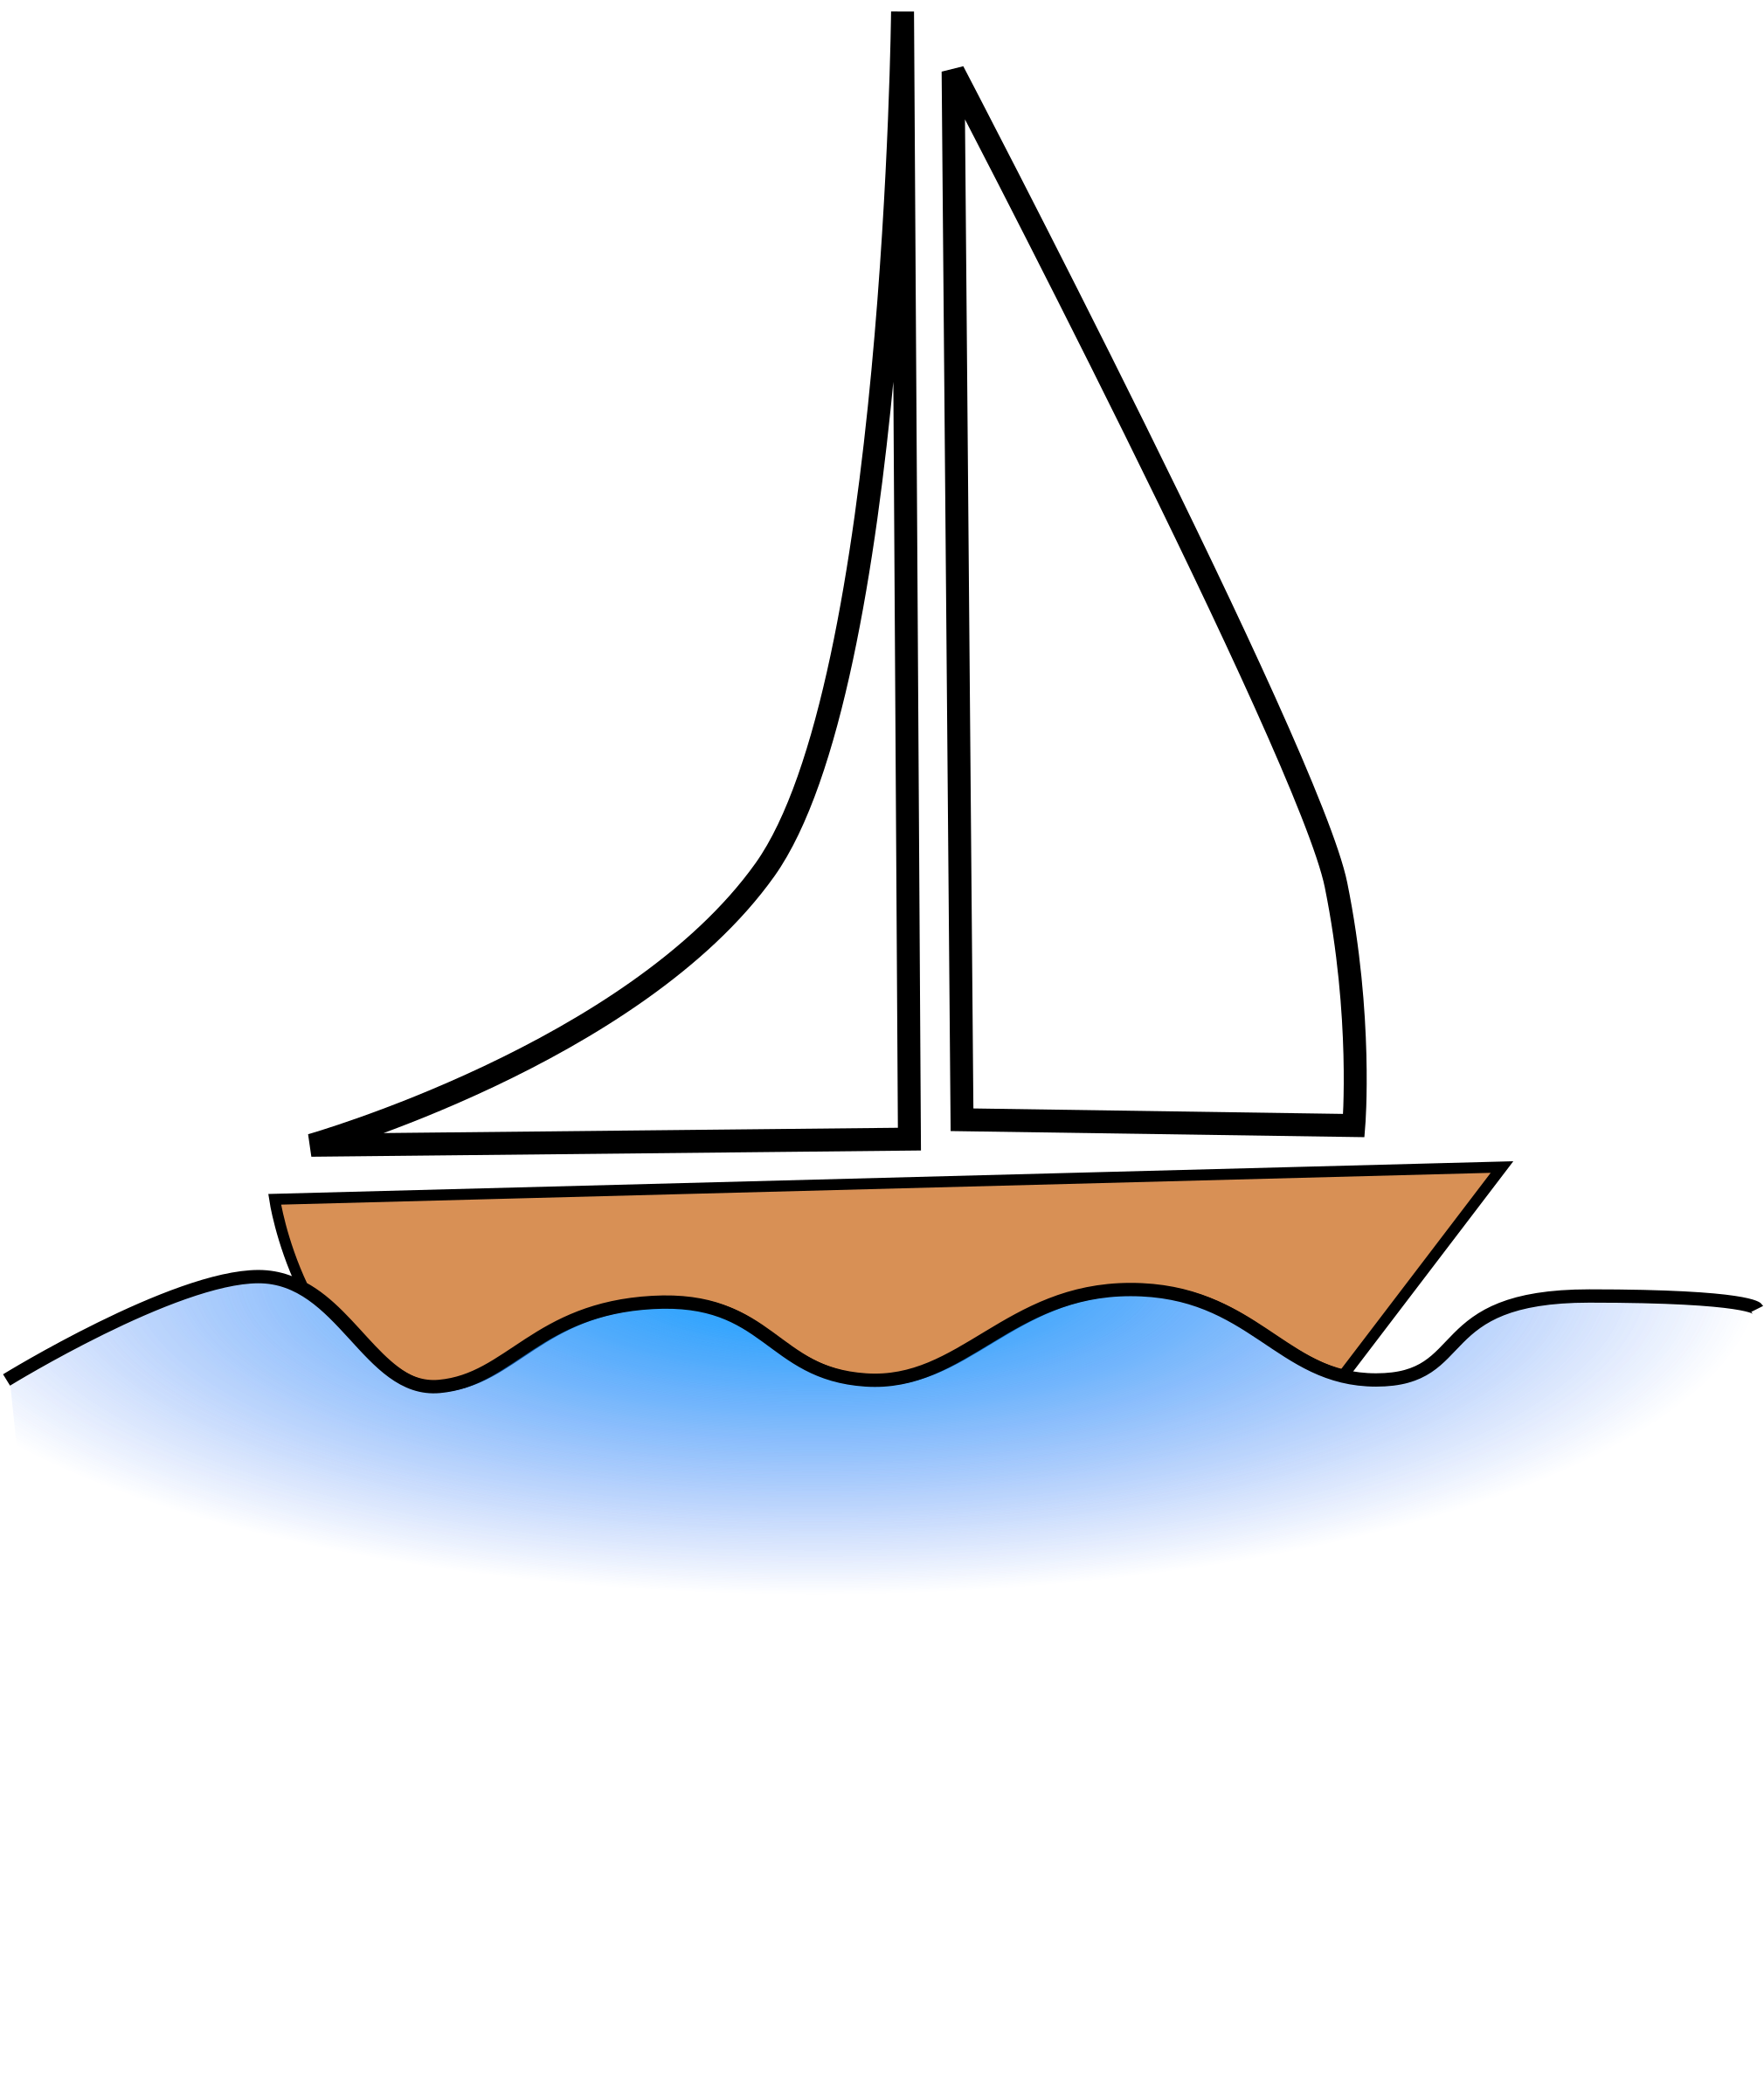 Clipart boat sailing boat. Water pencil and in